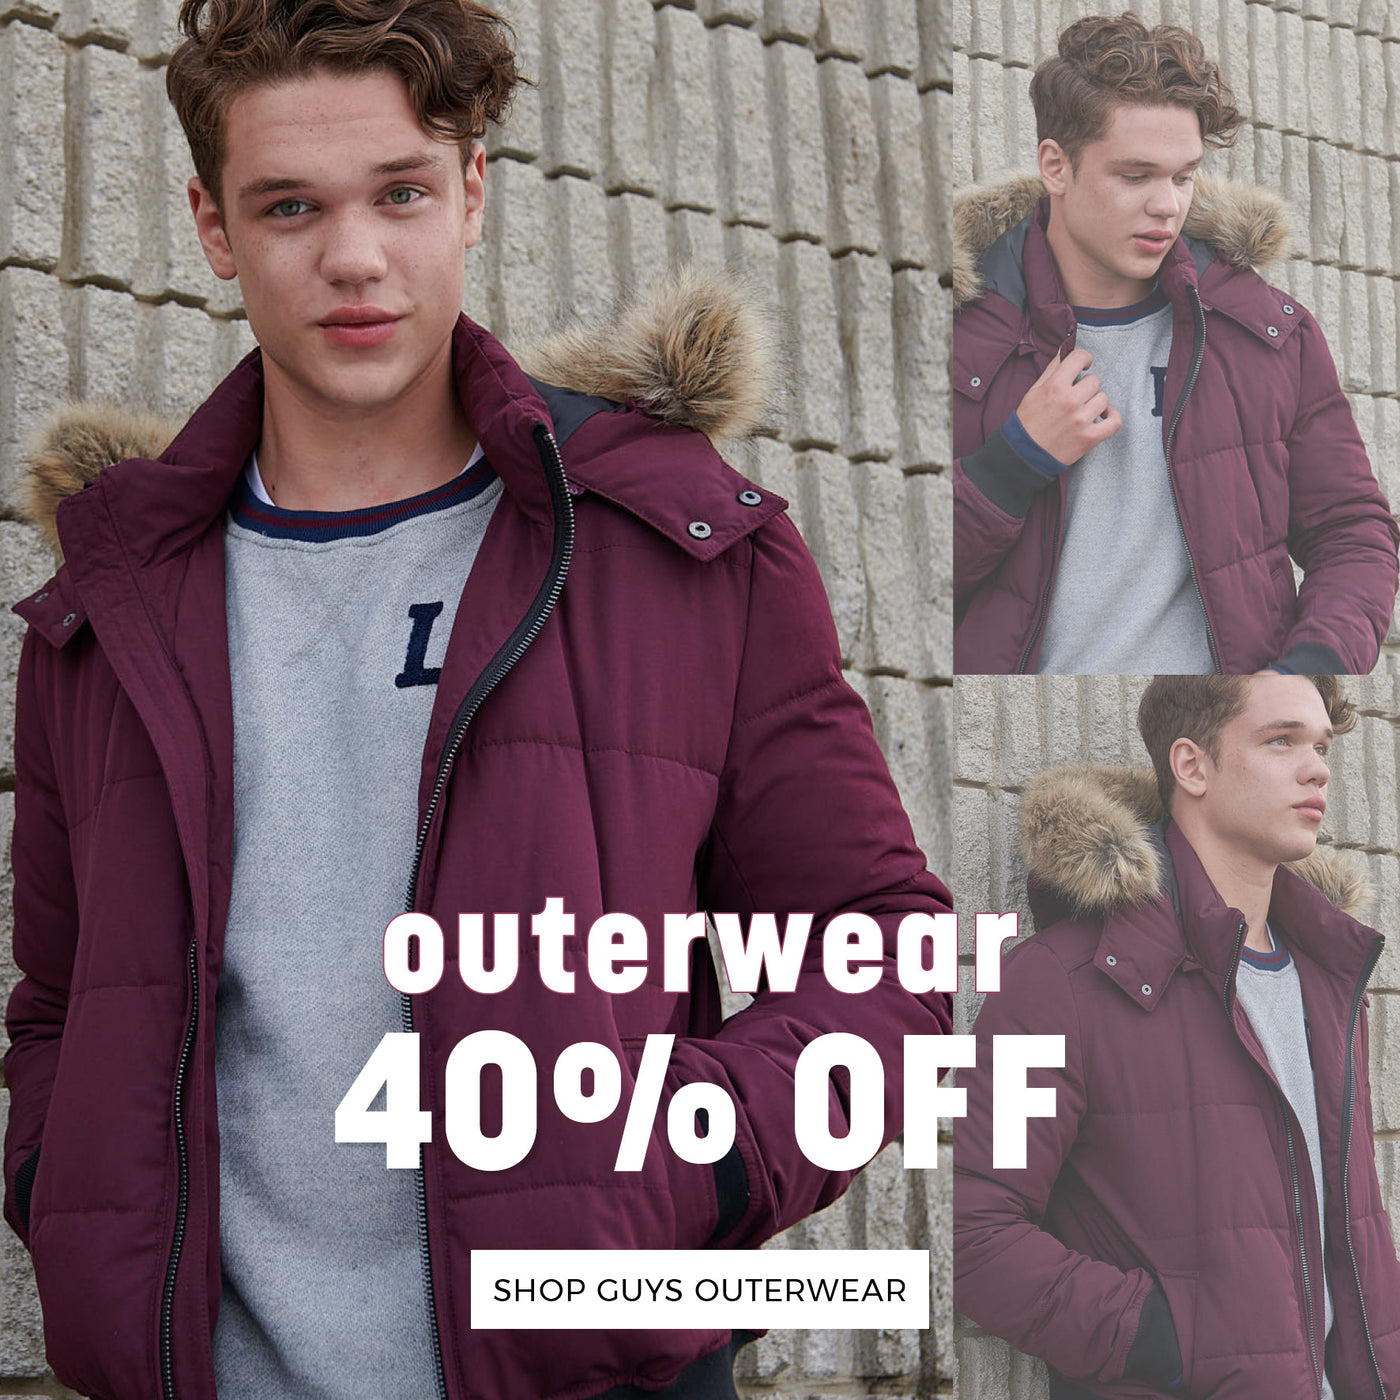 Stitches | 40% Off - Shop Guys Outerwear